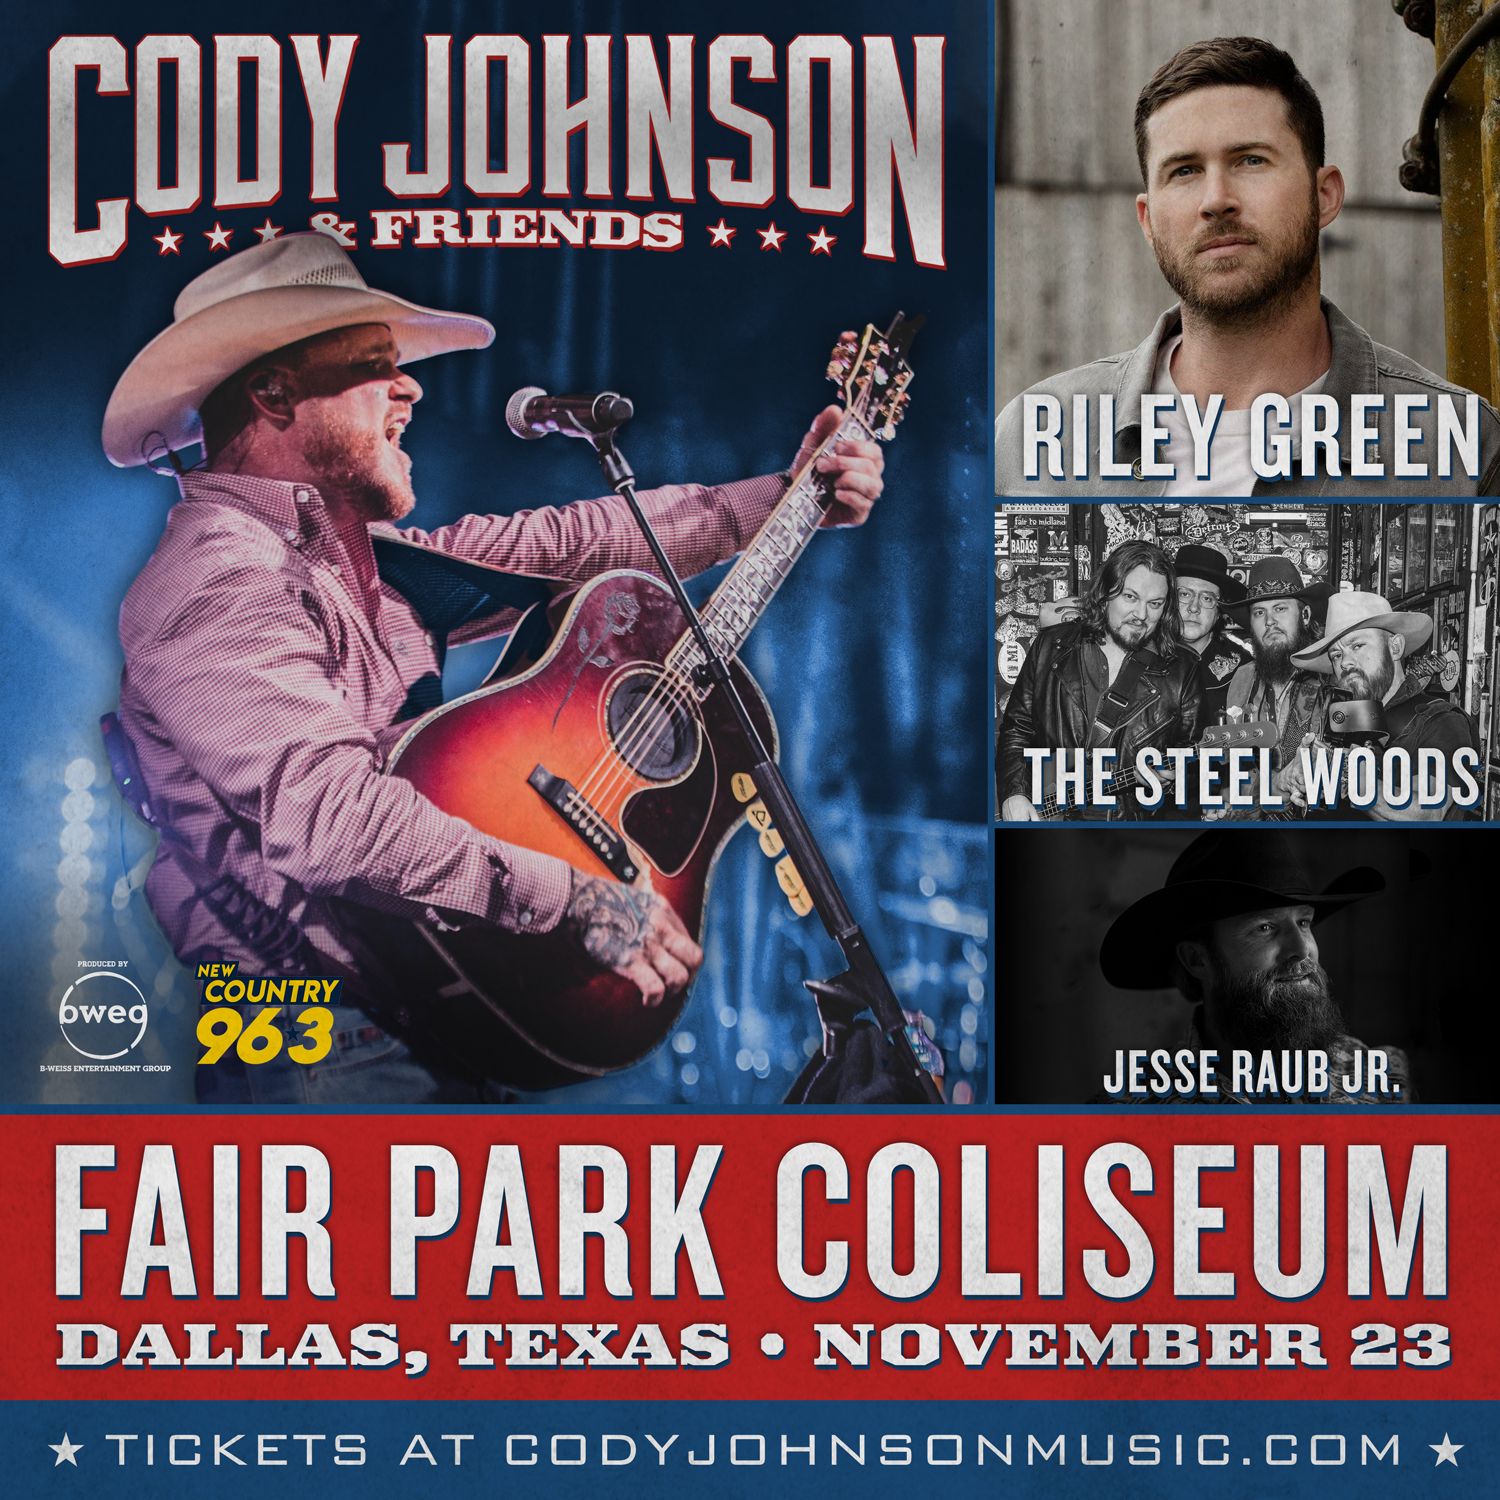 Cody Johnson & Friends | Fair Park Coliseum | 11.23.19